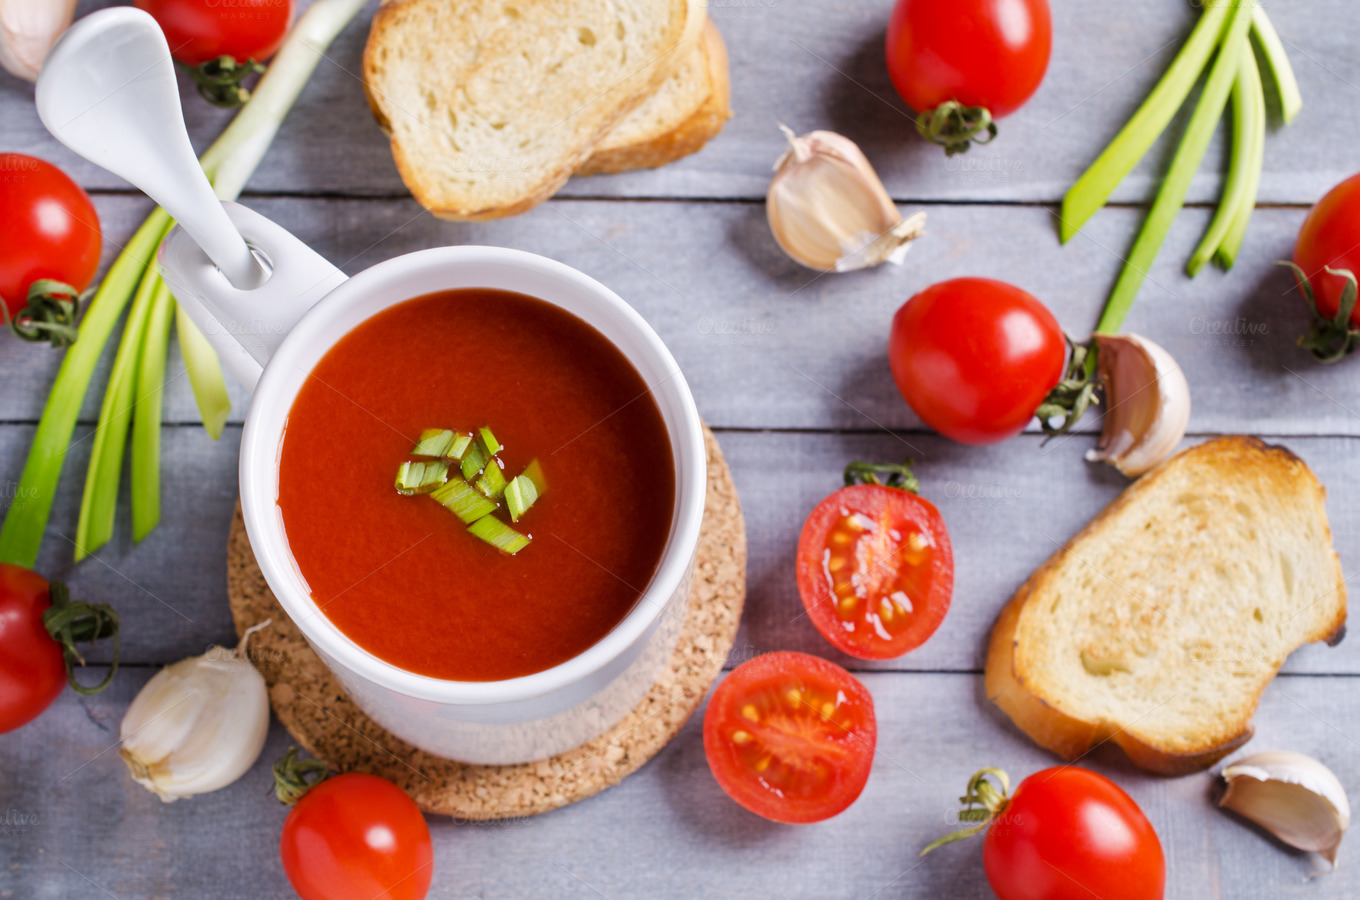 Tomato-puree-the-soup